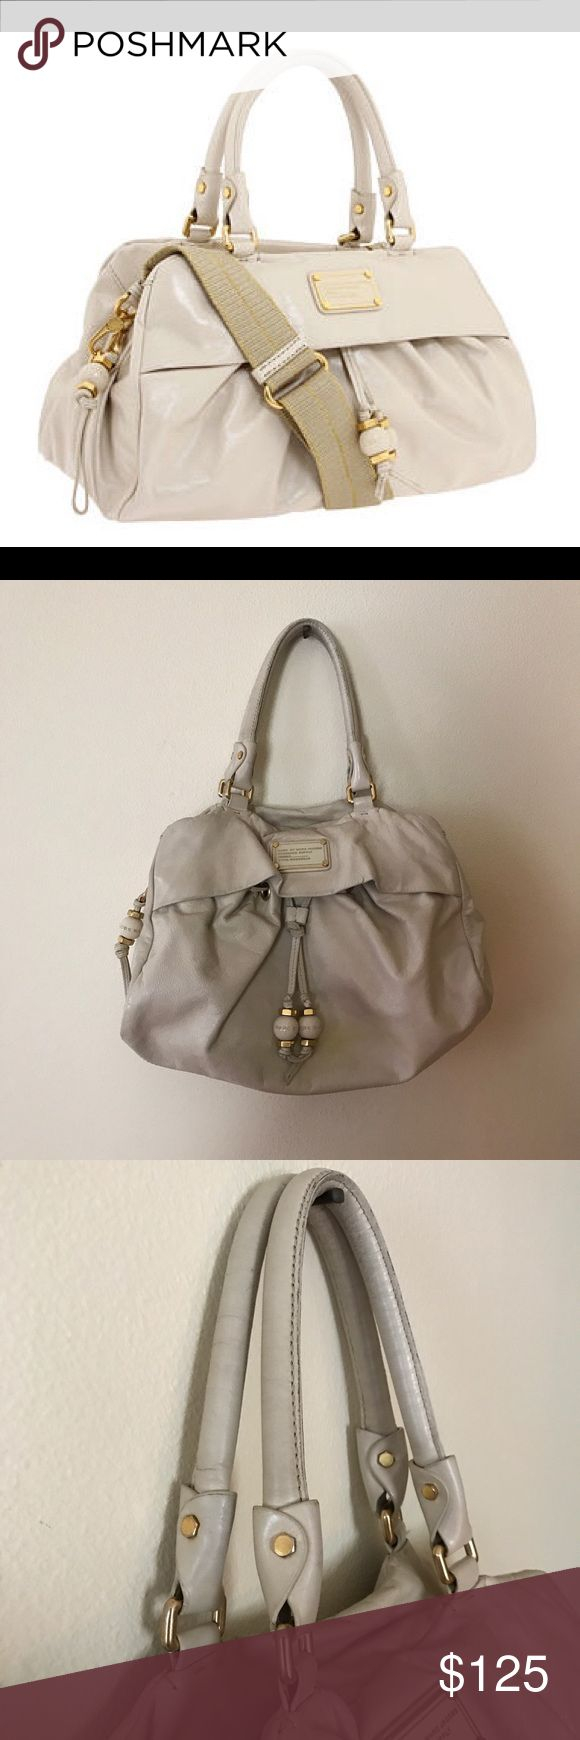 """Marc by Marc Jacobs - Q Groovee Bag Polished natural grain leather with pleating details.Stylish silhouette & eye catching hardware detail that is Marc Jacobs signature.The bag measures 15 1/2″ wide x 8 1/2″ deep x 10″ high, roomy enough to store all of your make up essentials, a wallet, & phone.Secret front pocket for easy access stuff!Dual handles with an attachable canvas cross body strap. Note, """"yellow"""" stain on front from storage. Price reflects damage. A skilled cobbler should be…"""